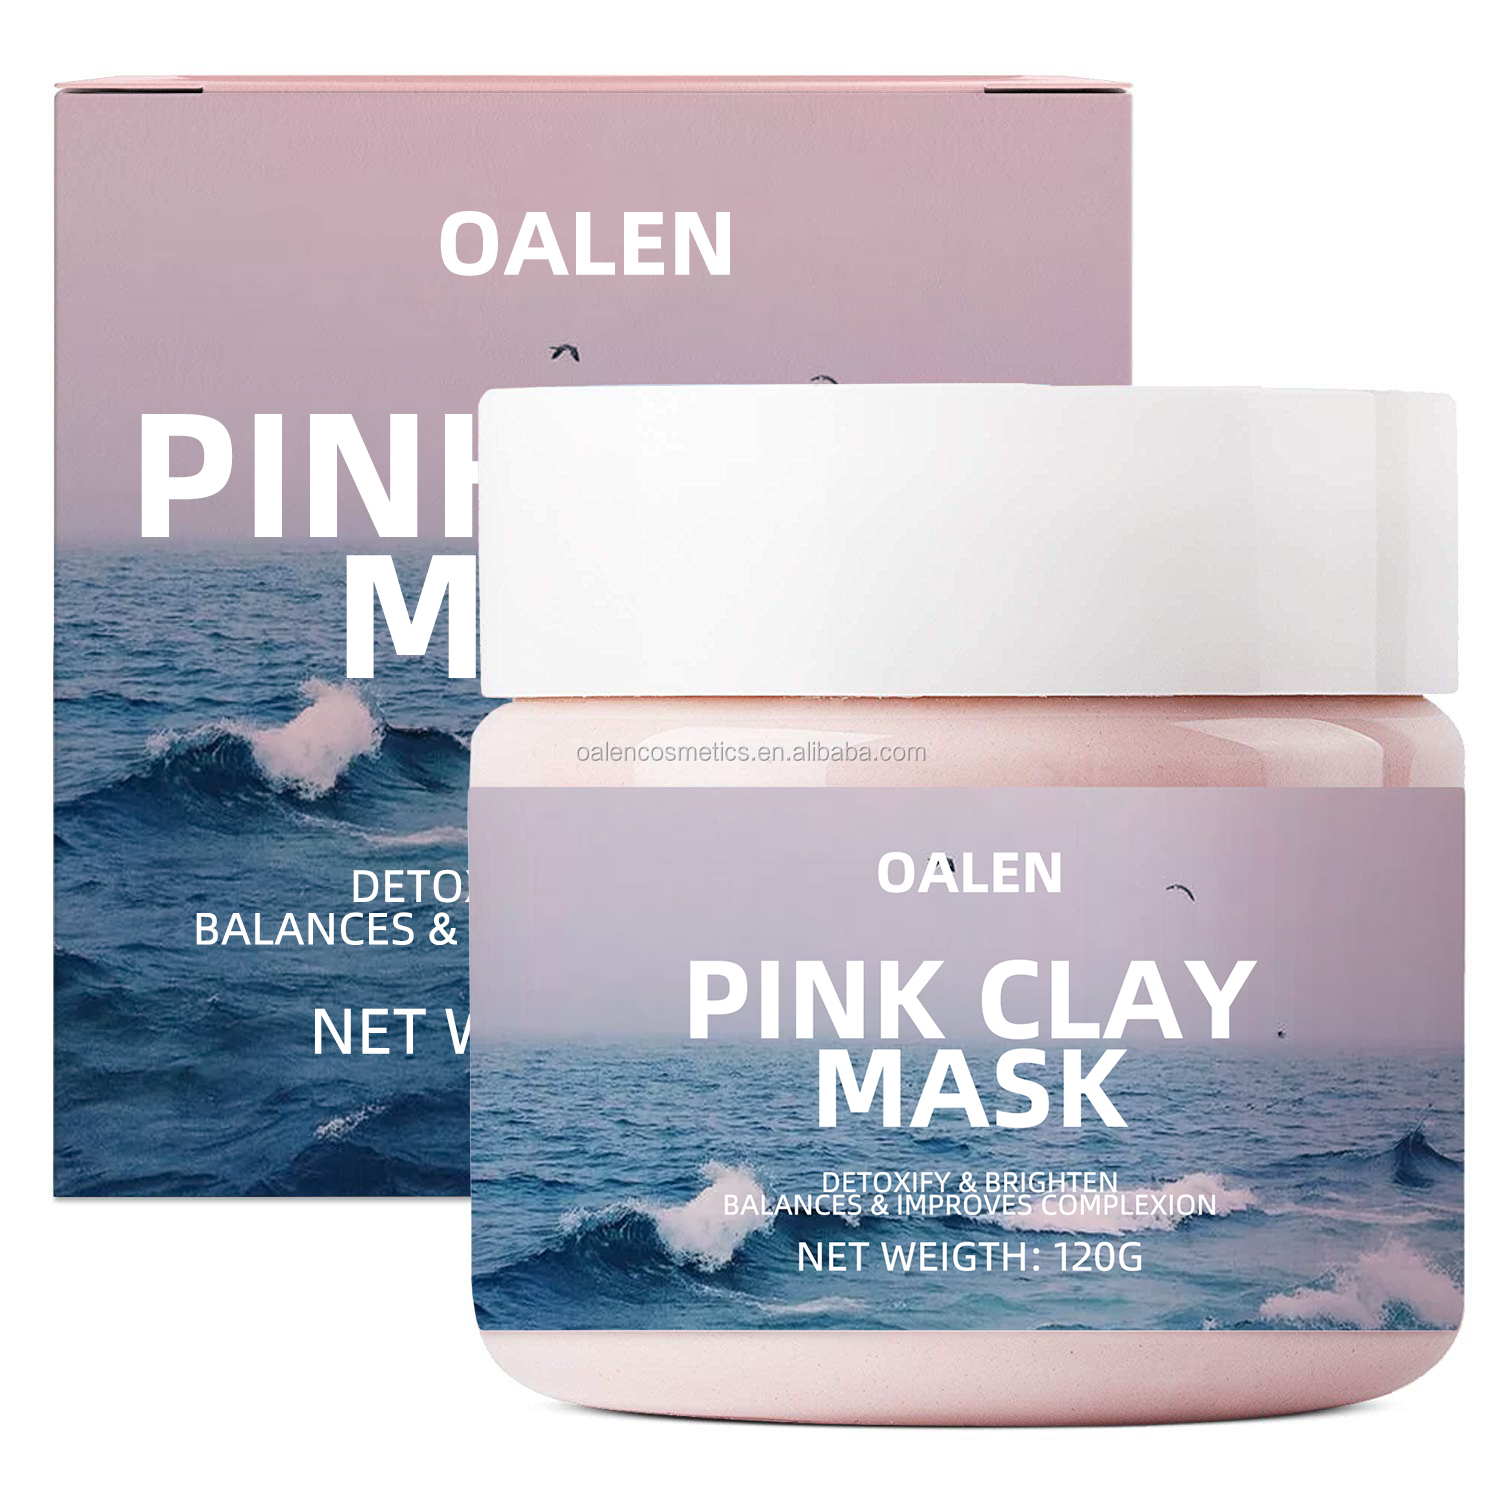 Organic Exfoliating Facial Clay Mask Pore Refining Bentonite Natural Pink Clay Mask